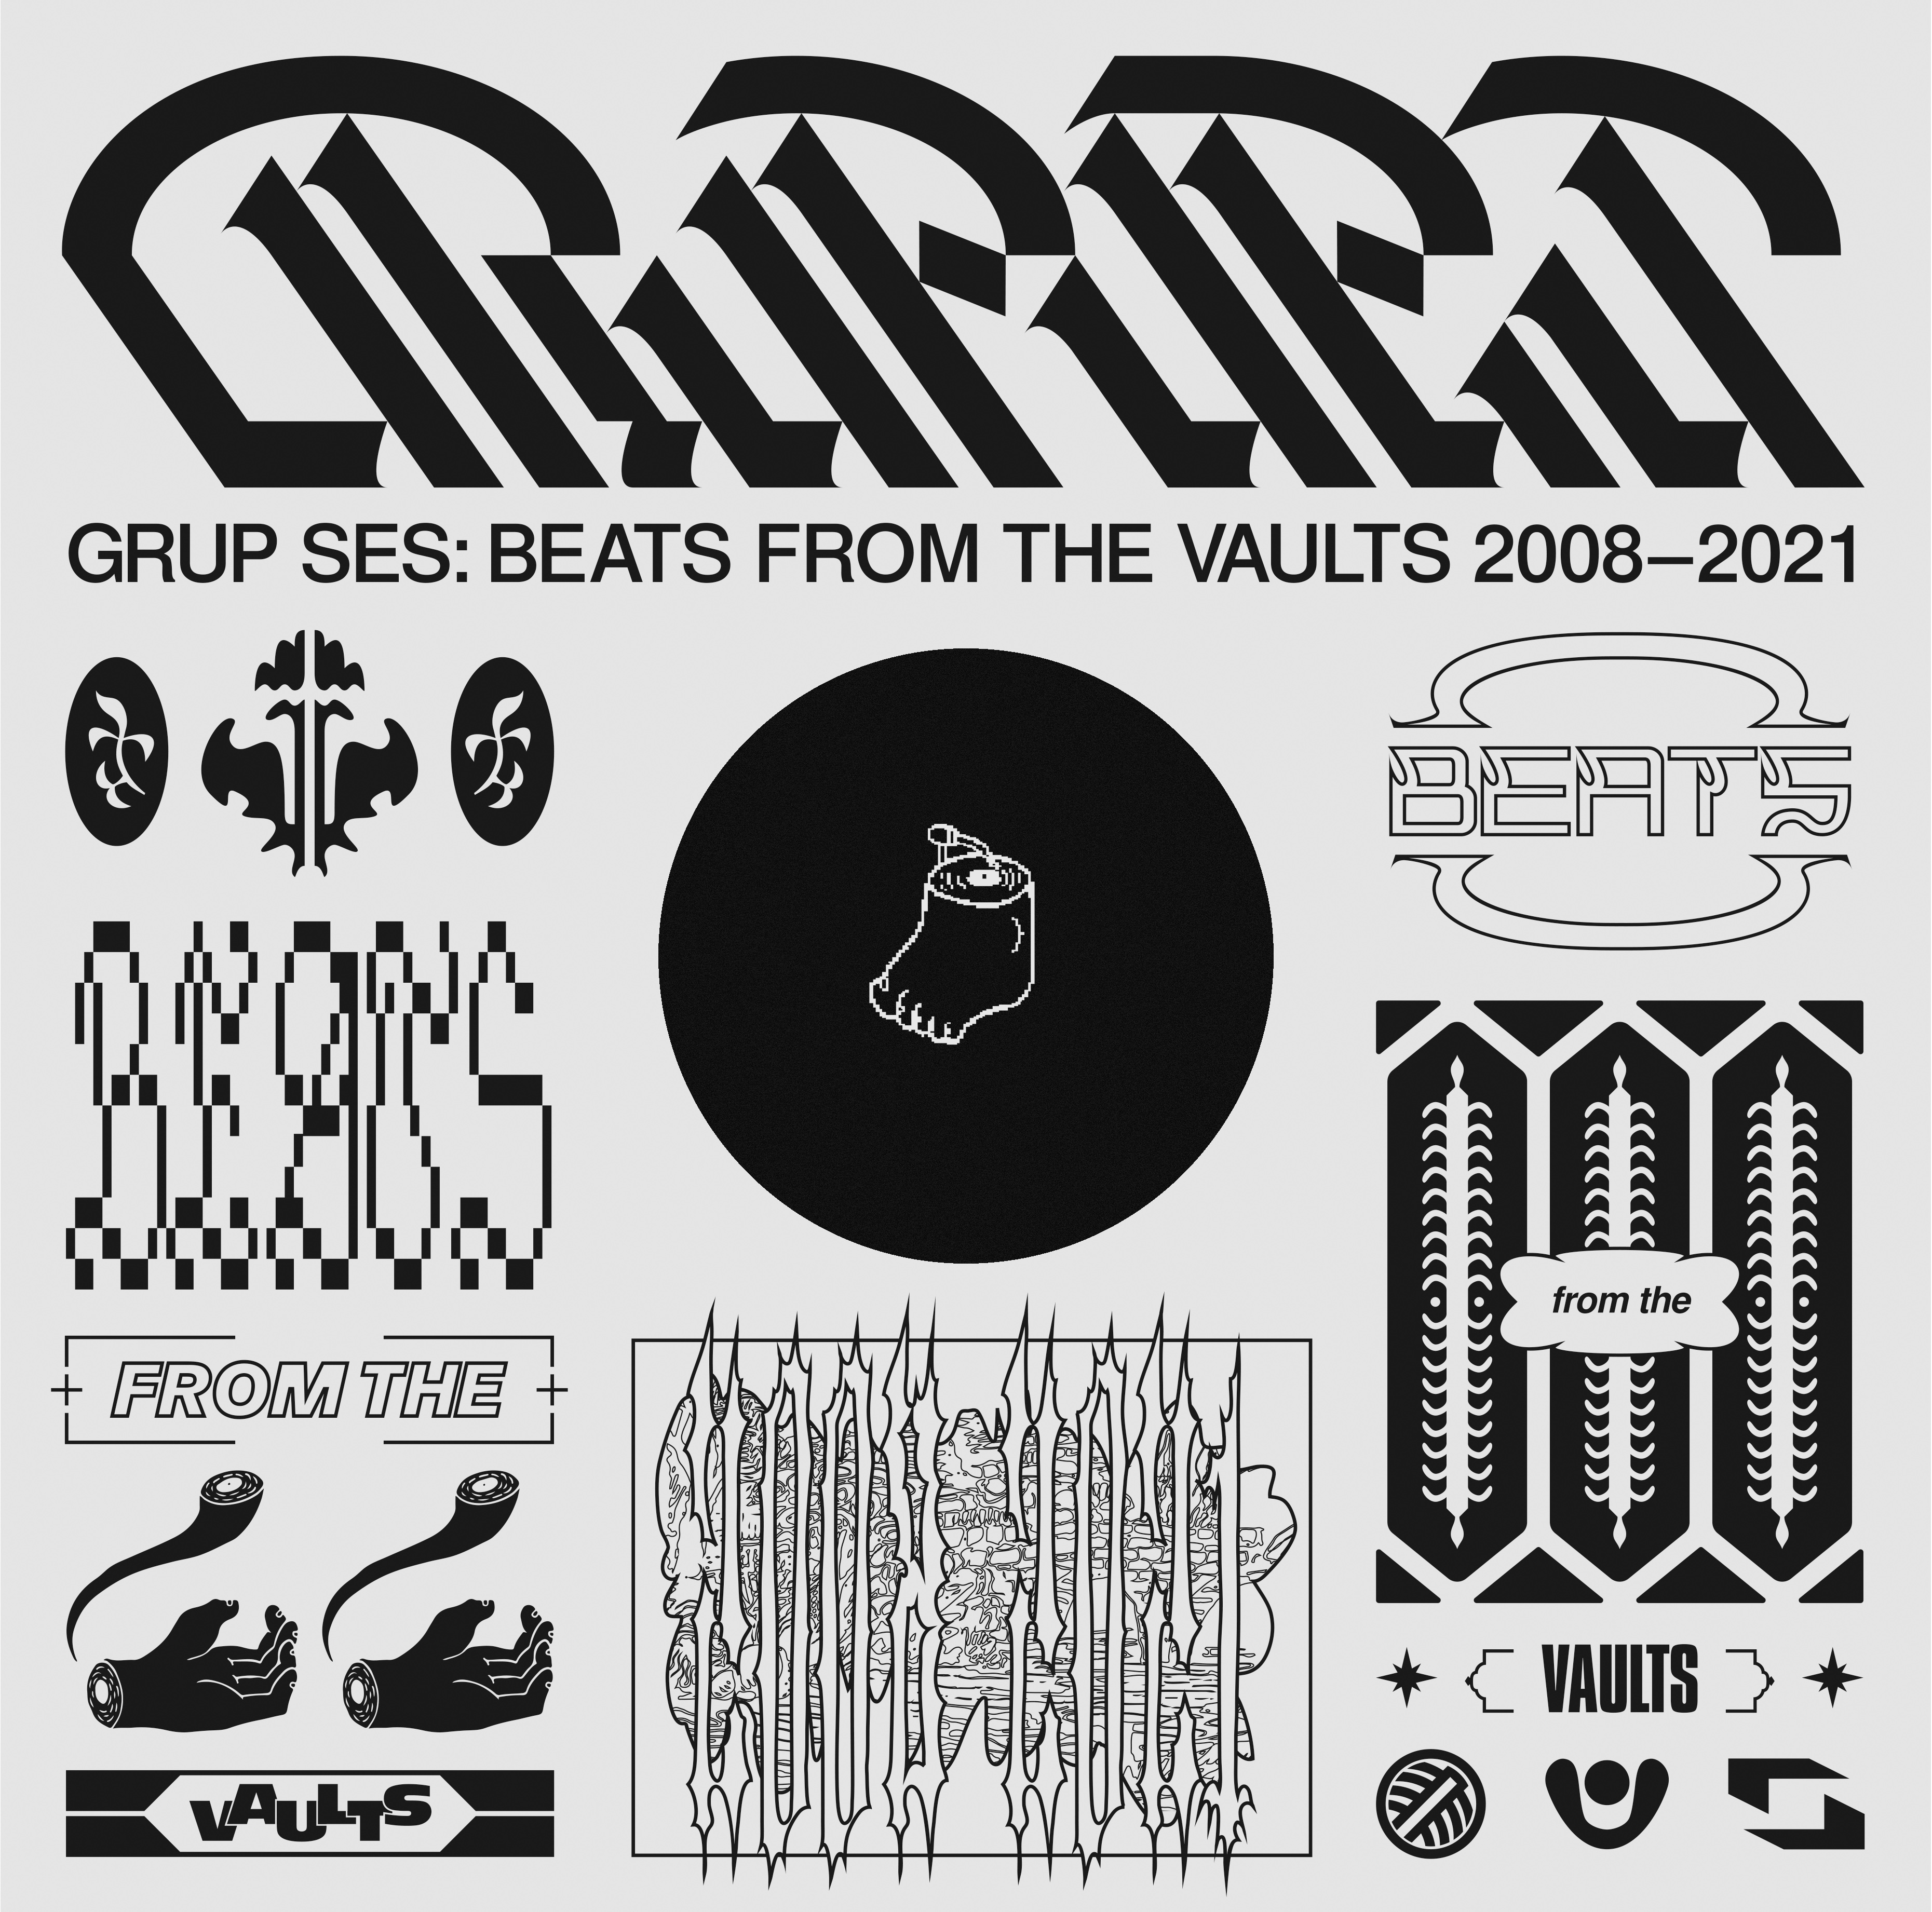 Beats from the Vaults 2008 - 2021